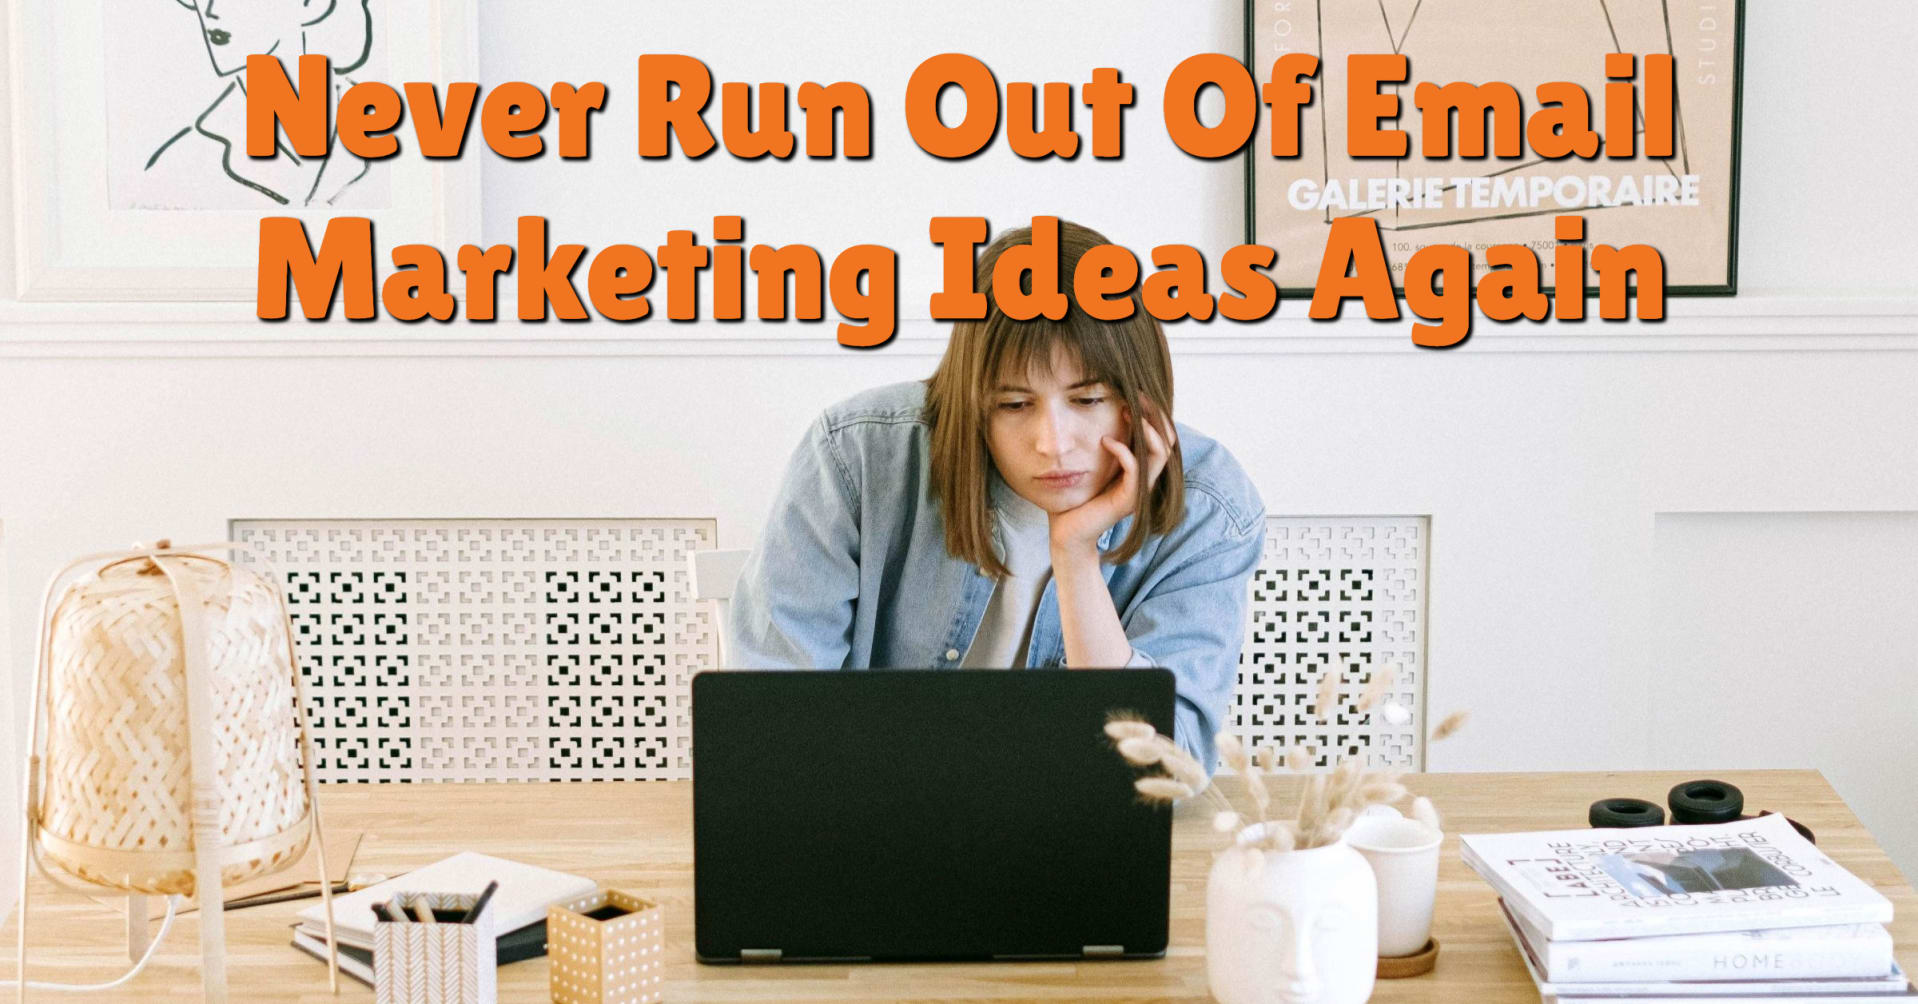 Never Run Out Of Email Marketing Ideas Again